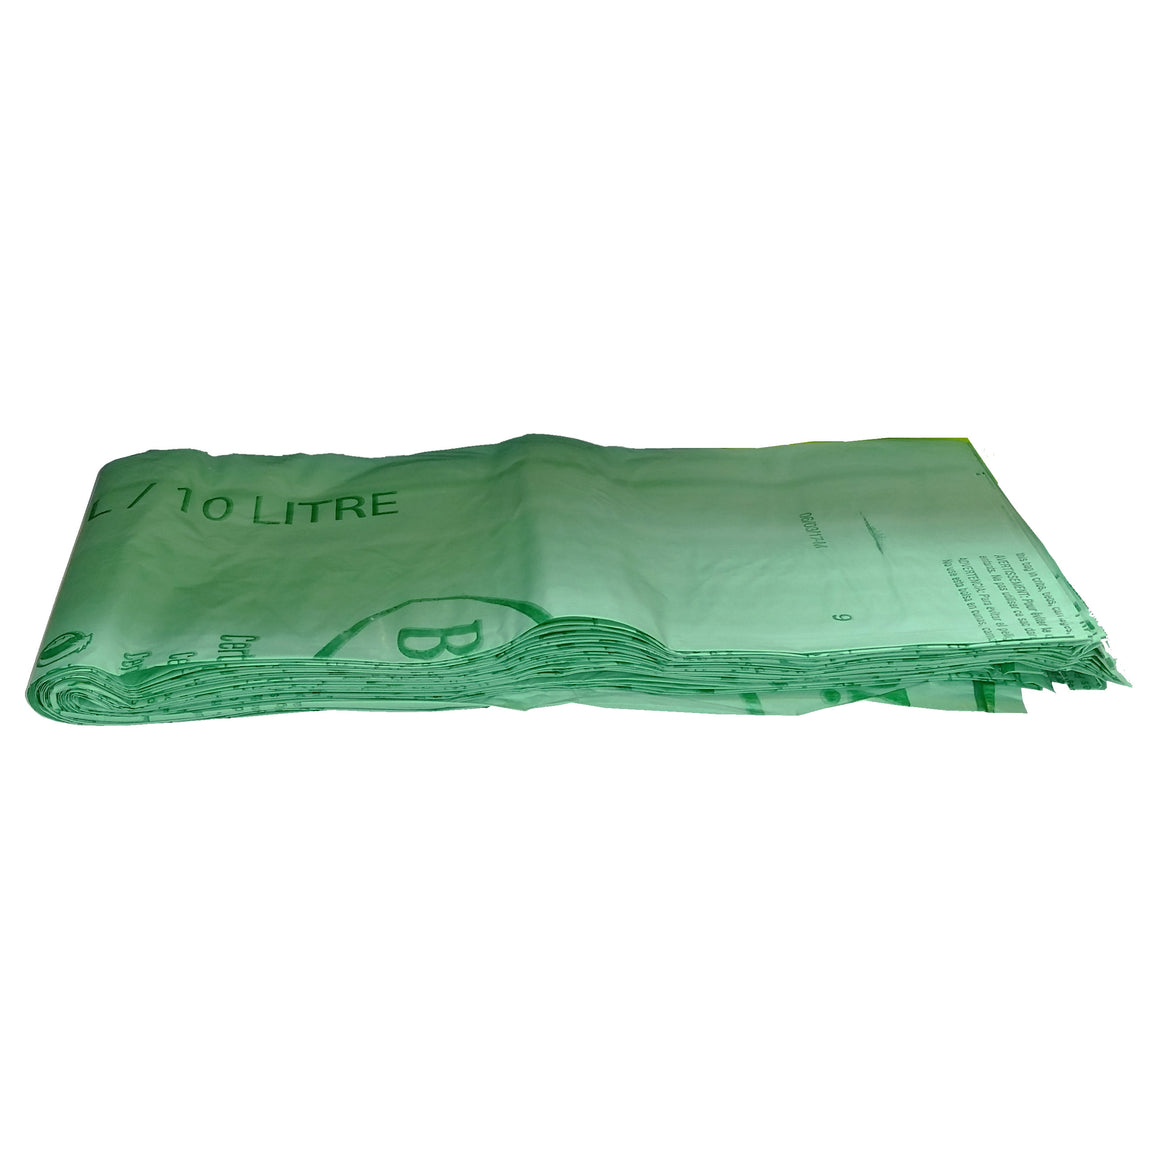 "16.9"" X 17.7"" X 0.64 Mil 3 Gallon Green Certified Compostable Plastic Food Scrap Collection Bags"